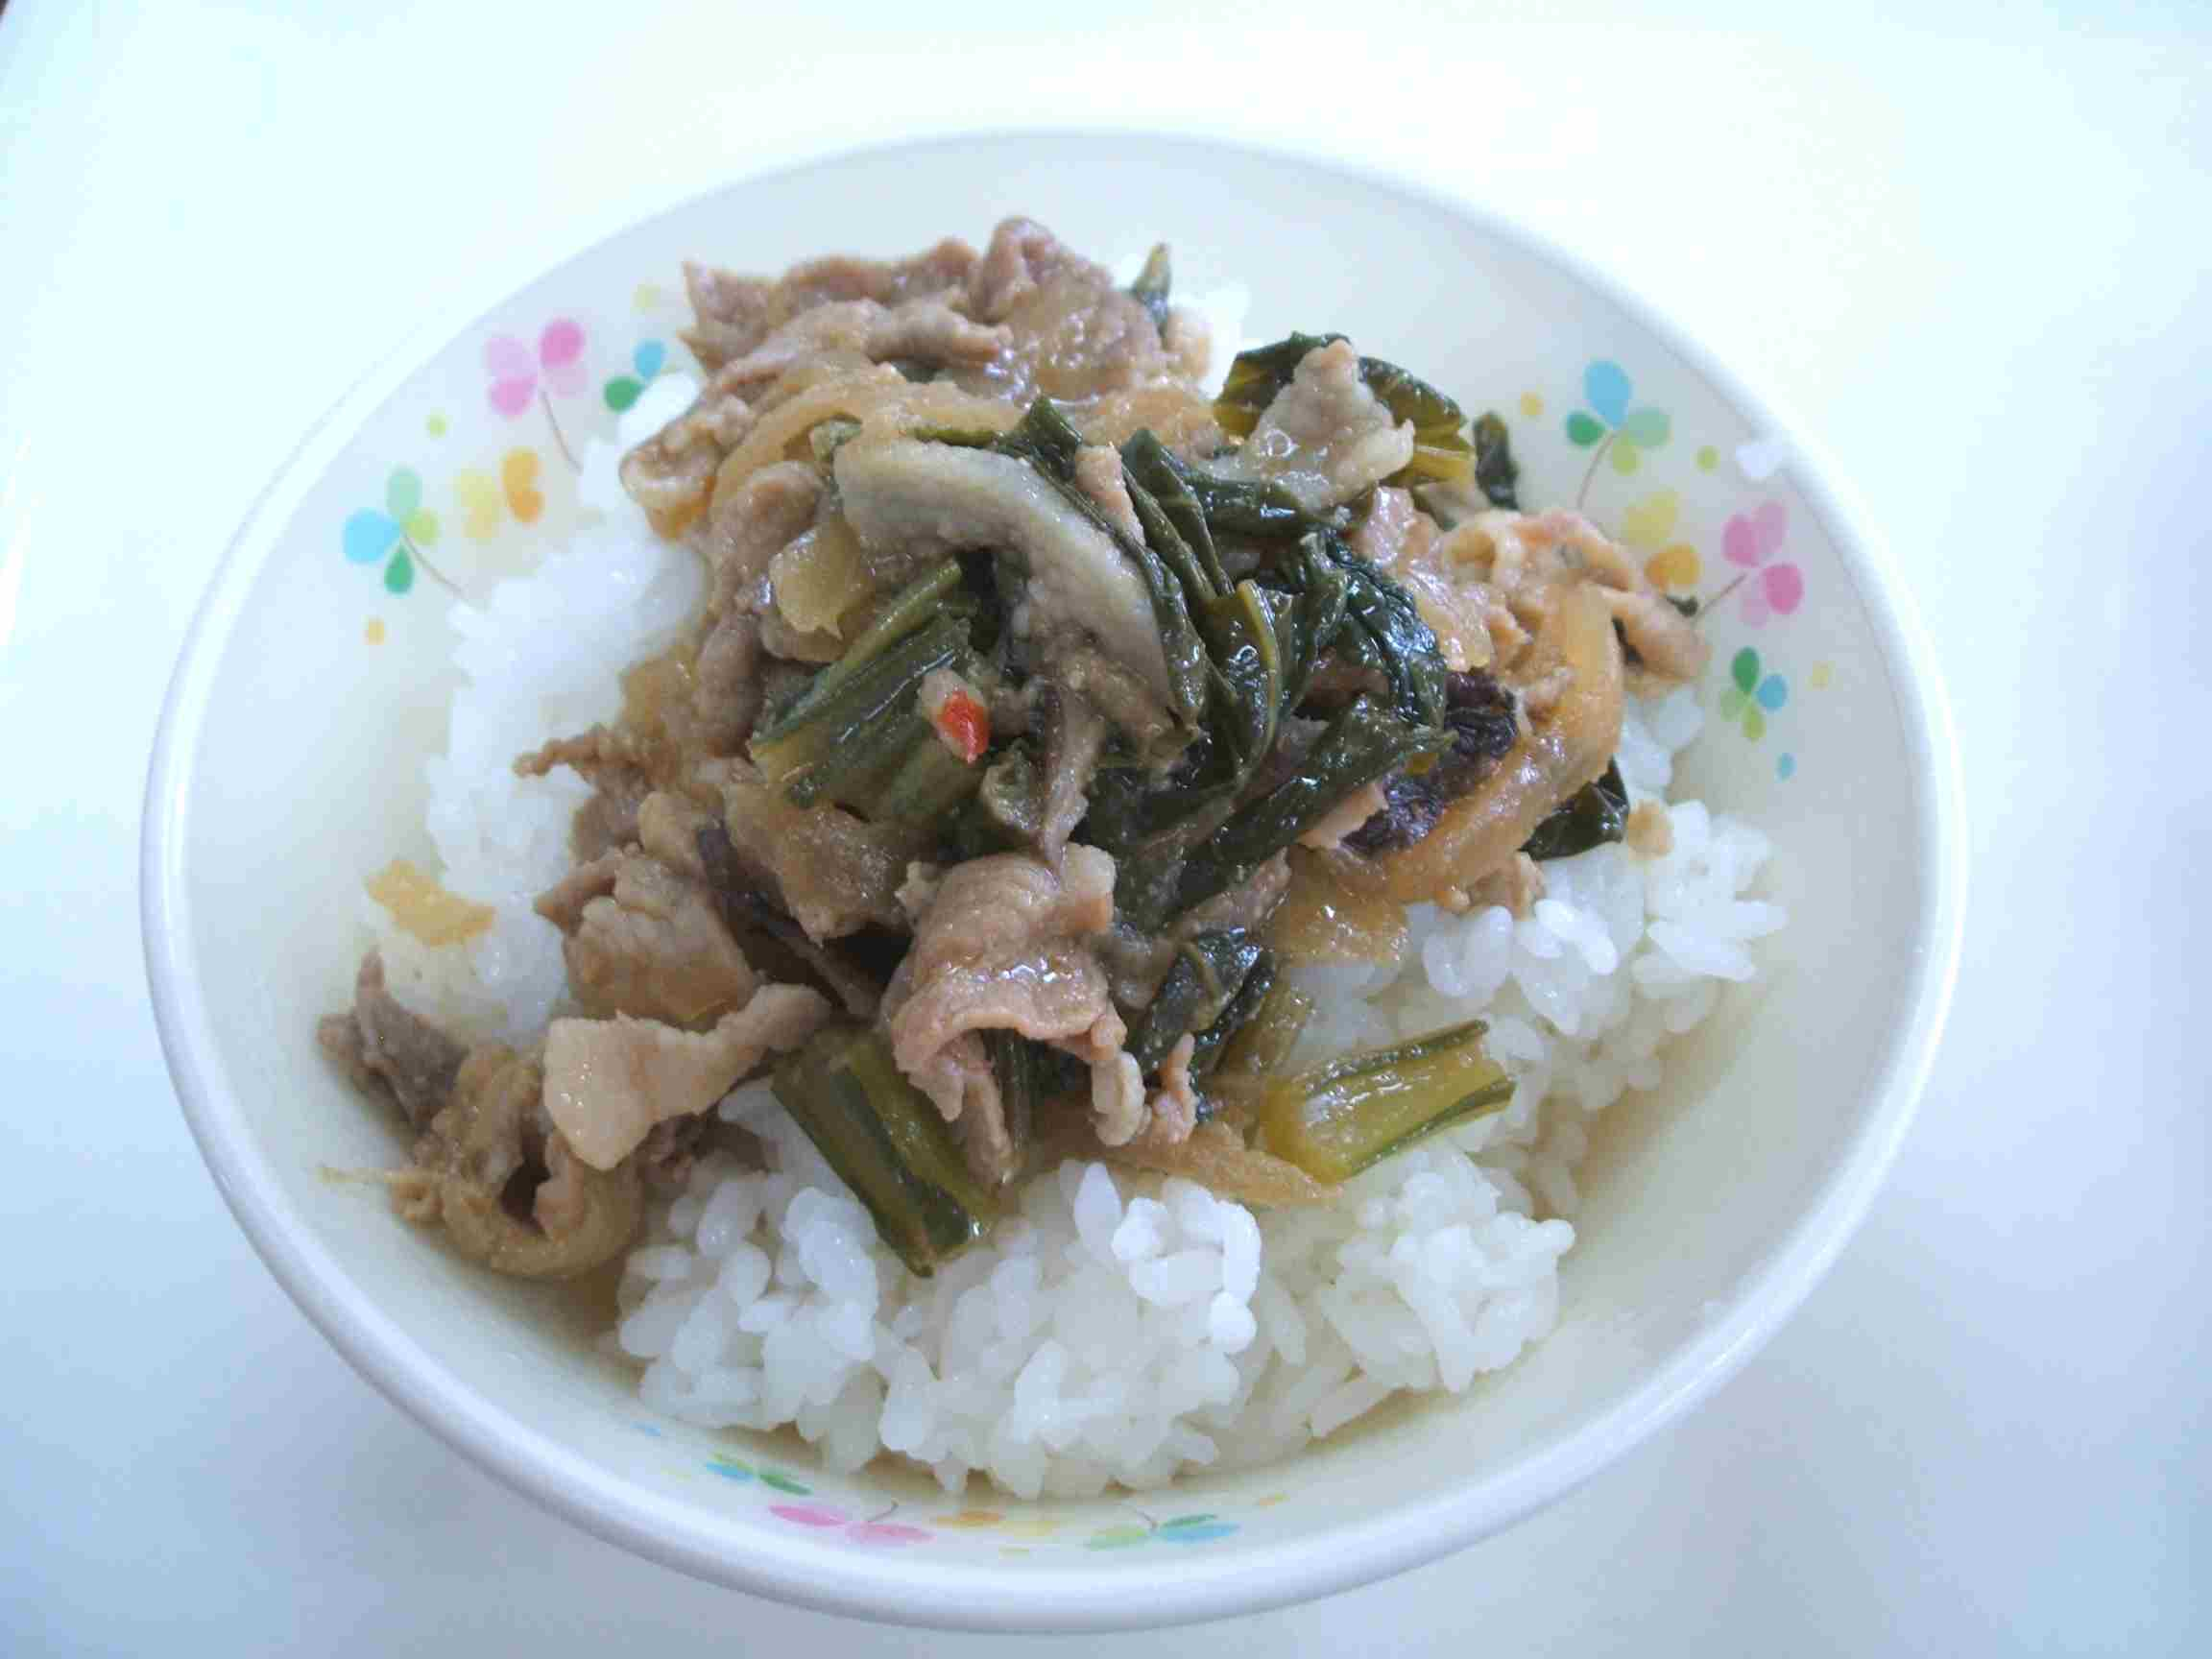 http://www.kyo-gk.com/recipes/images/fry/2010040101.jpg